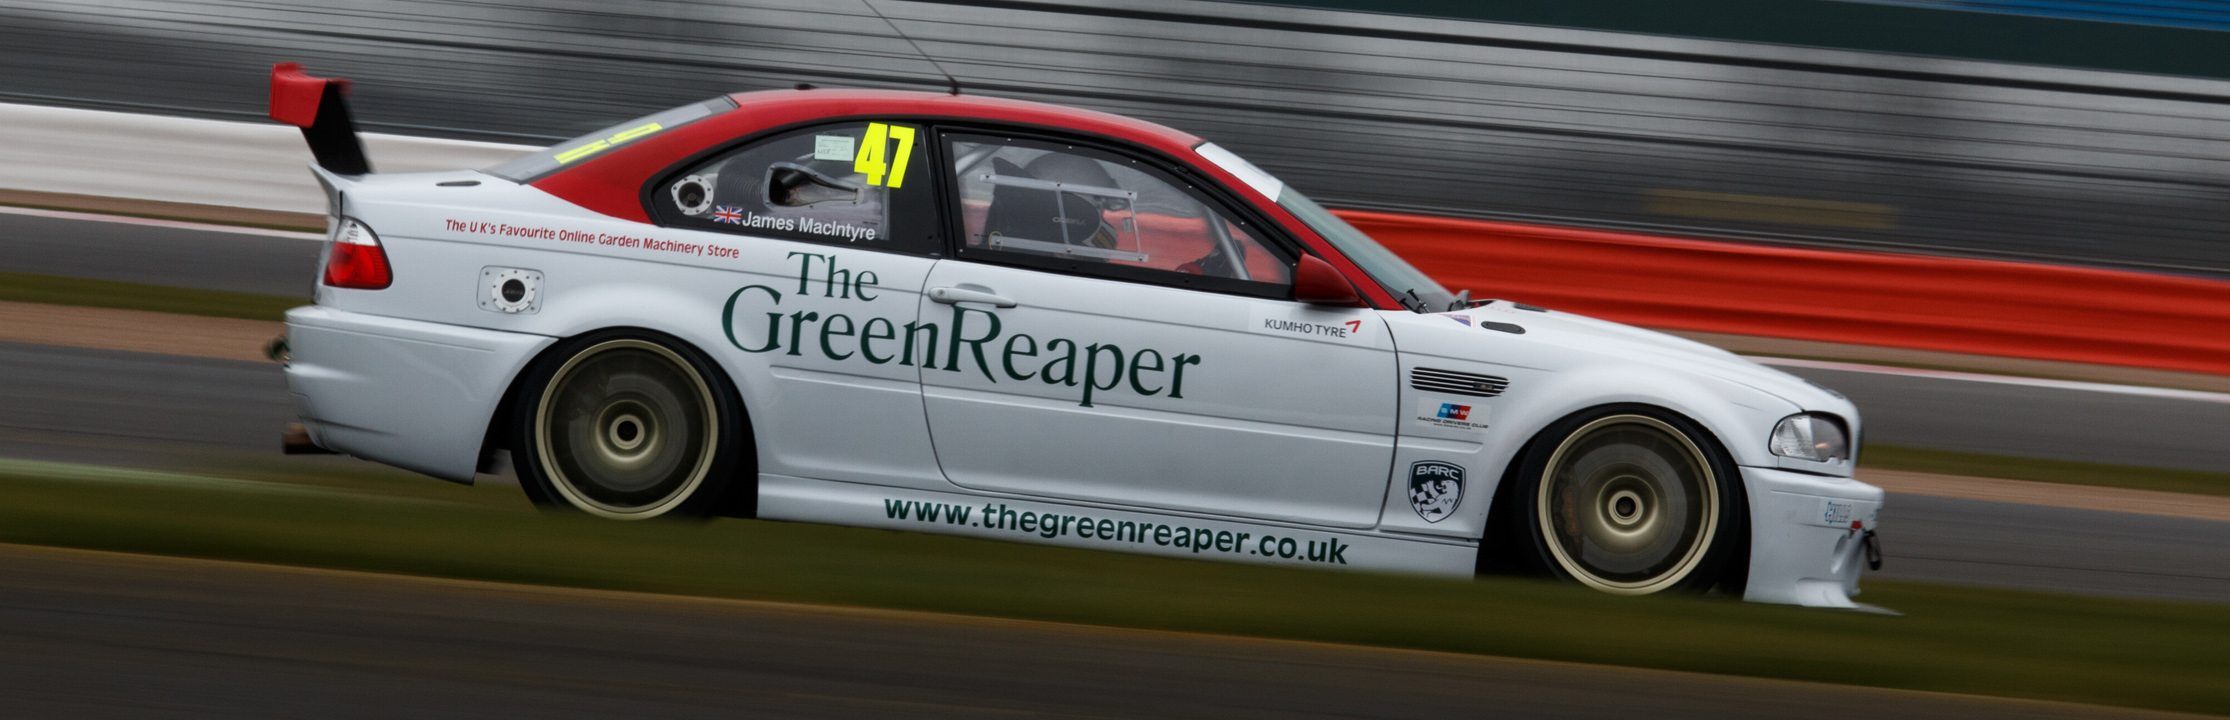 The Green Reaper Motorsport at Silverstone GP, March 2016